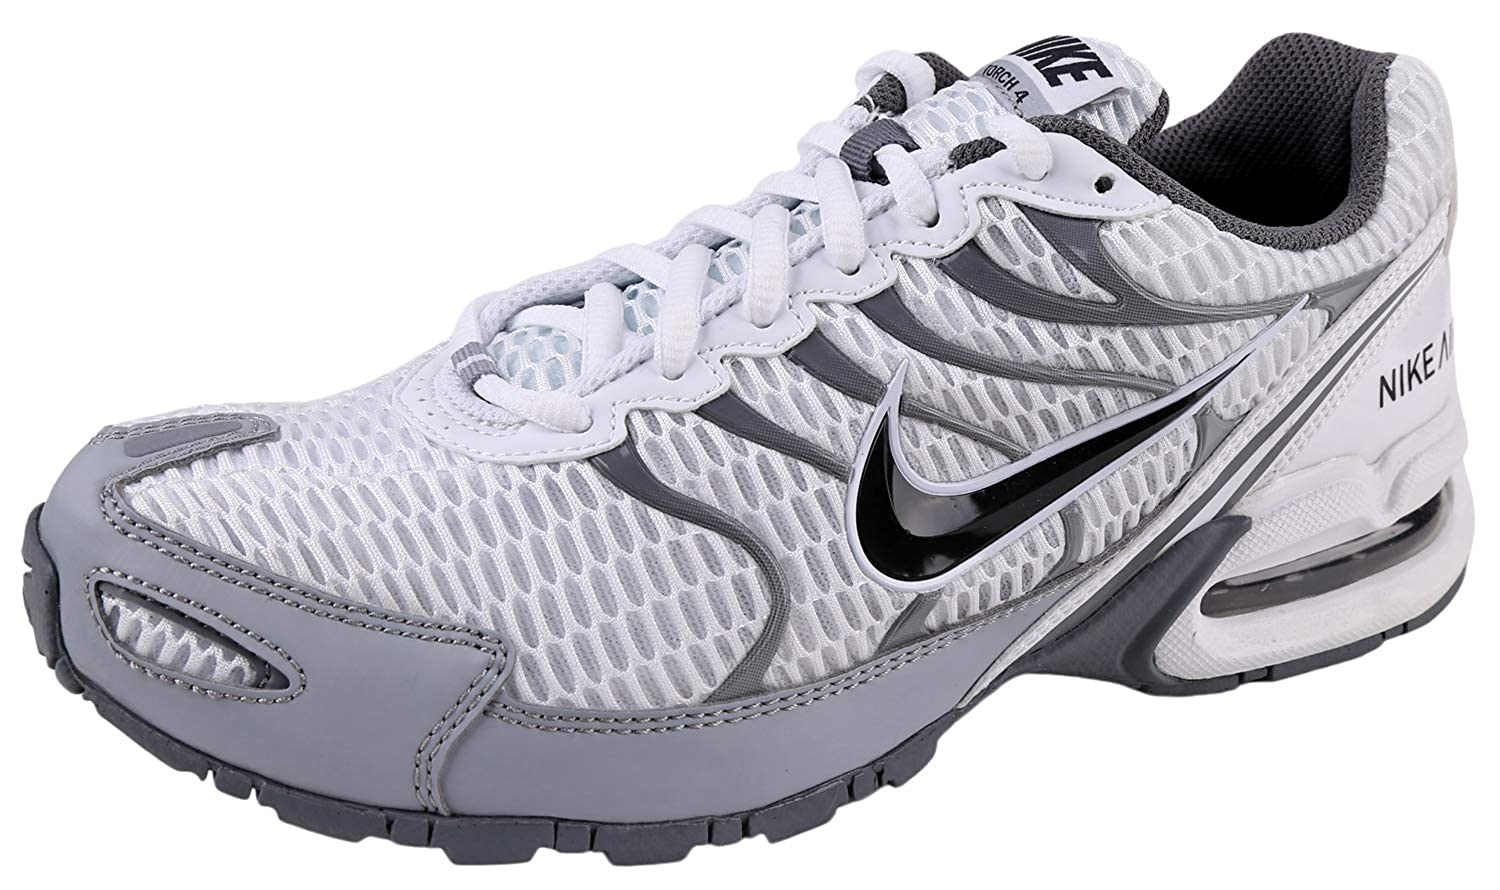 designer fashion 333e9 0a31e Nike Mens Air Max Torch 4 Running Shoe (9.5 D(M) US, White/Anthracite/Wolf  Grey)